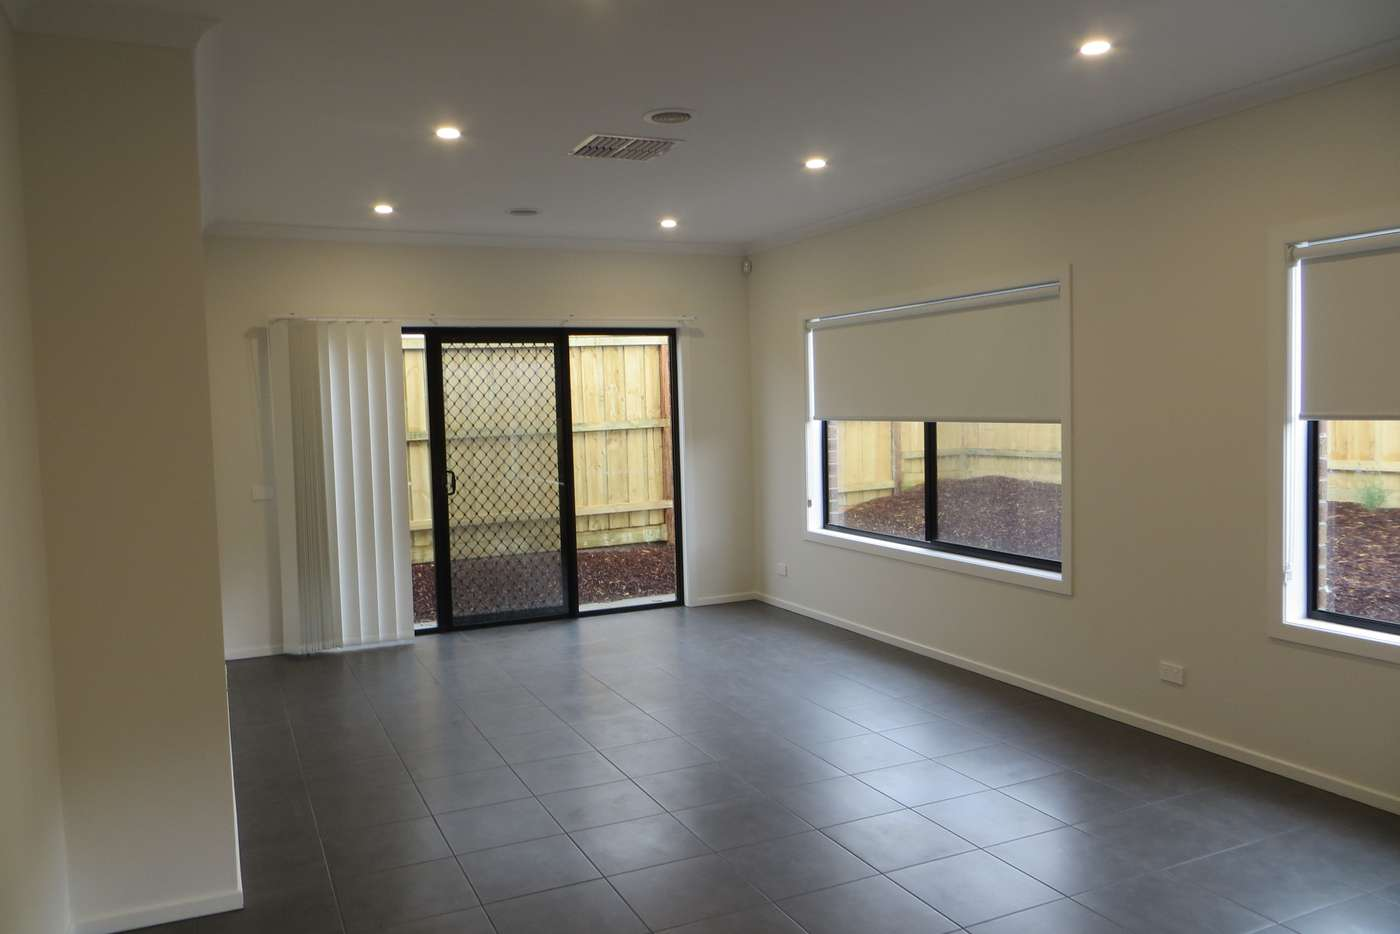 Sixth view of Homely house listing, 4 Cottongrass Avenue, Clyde North VIC 3978